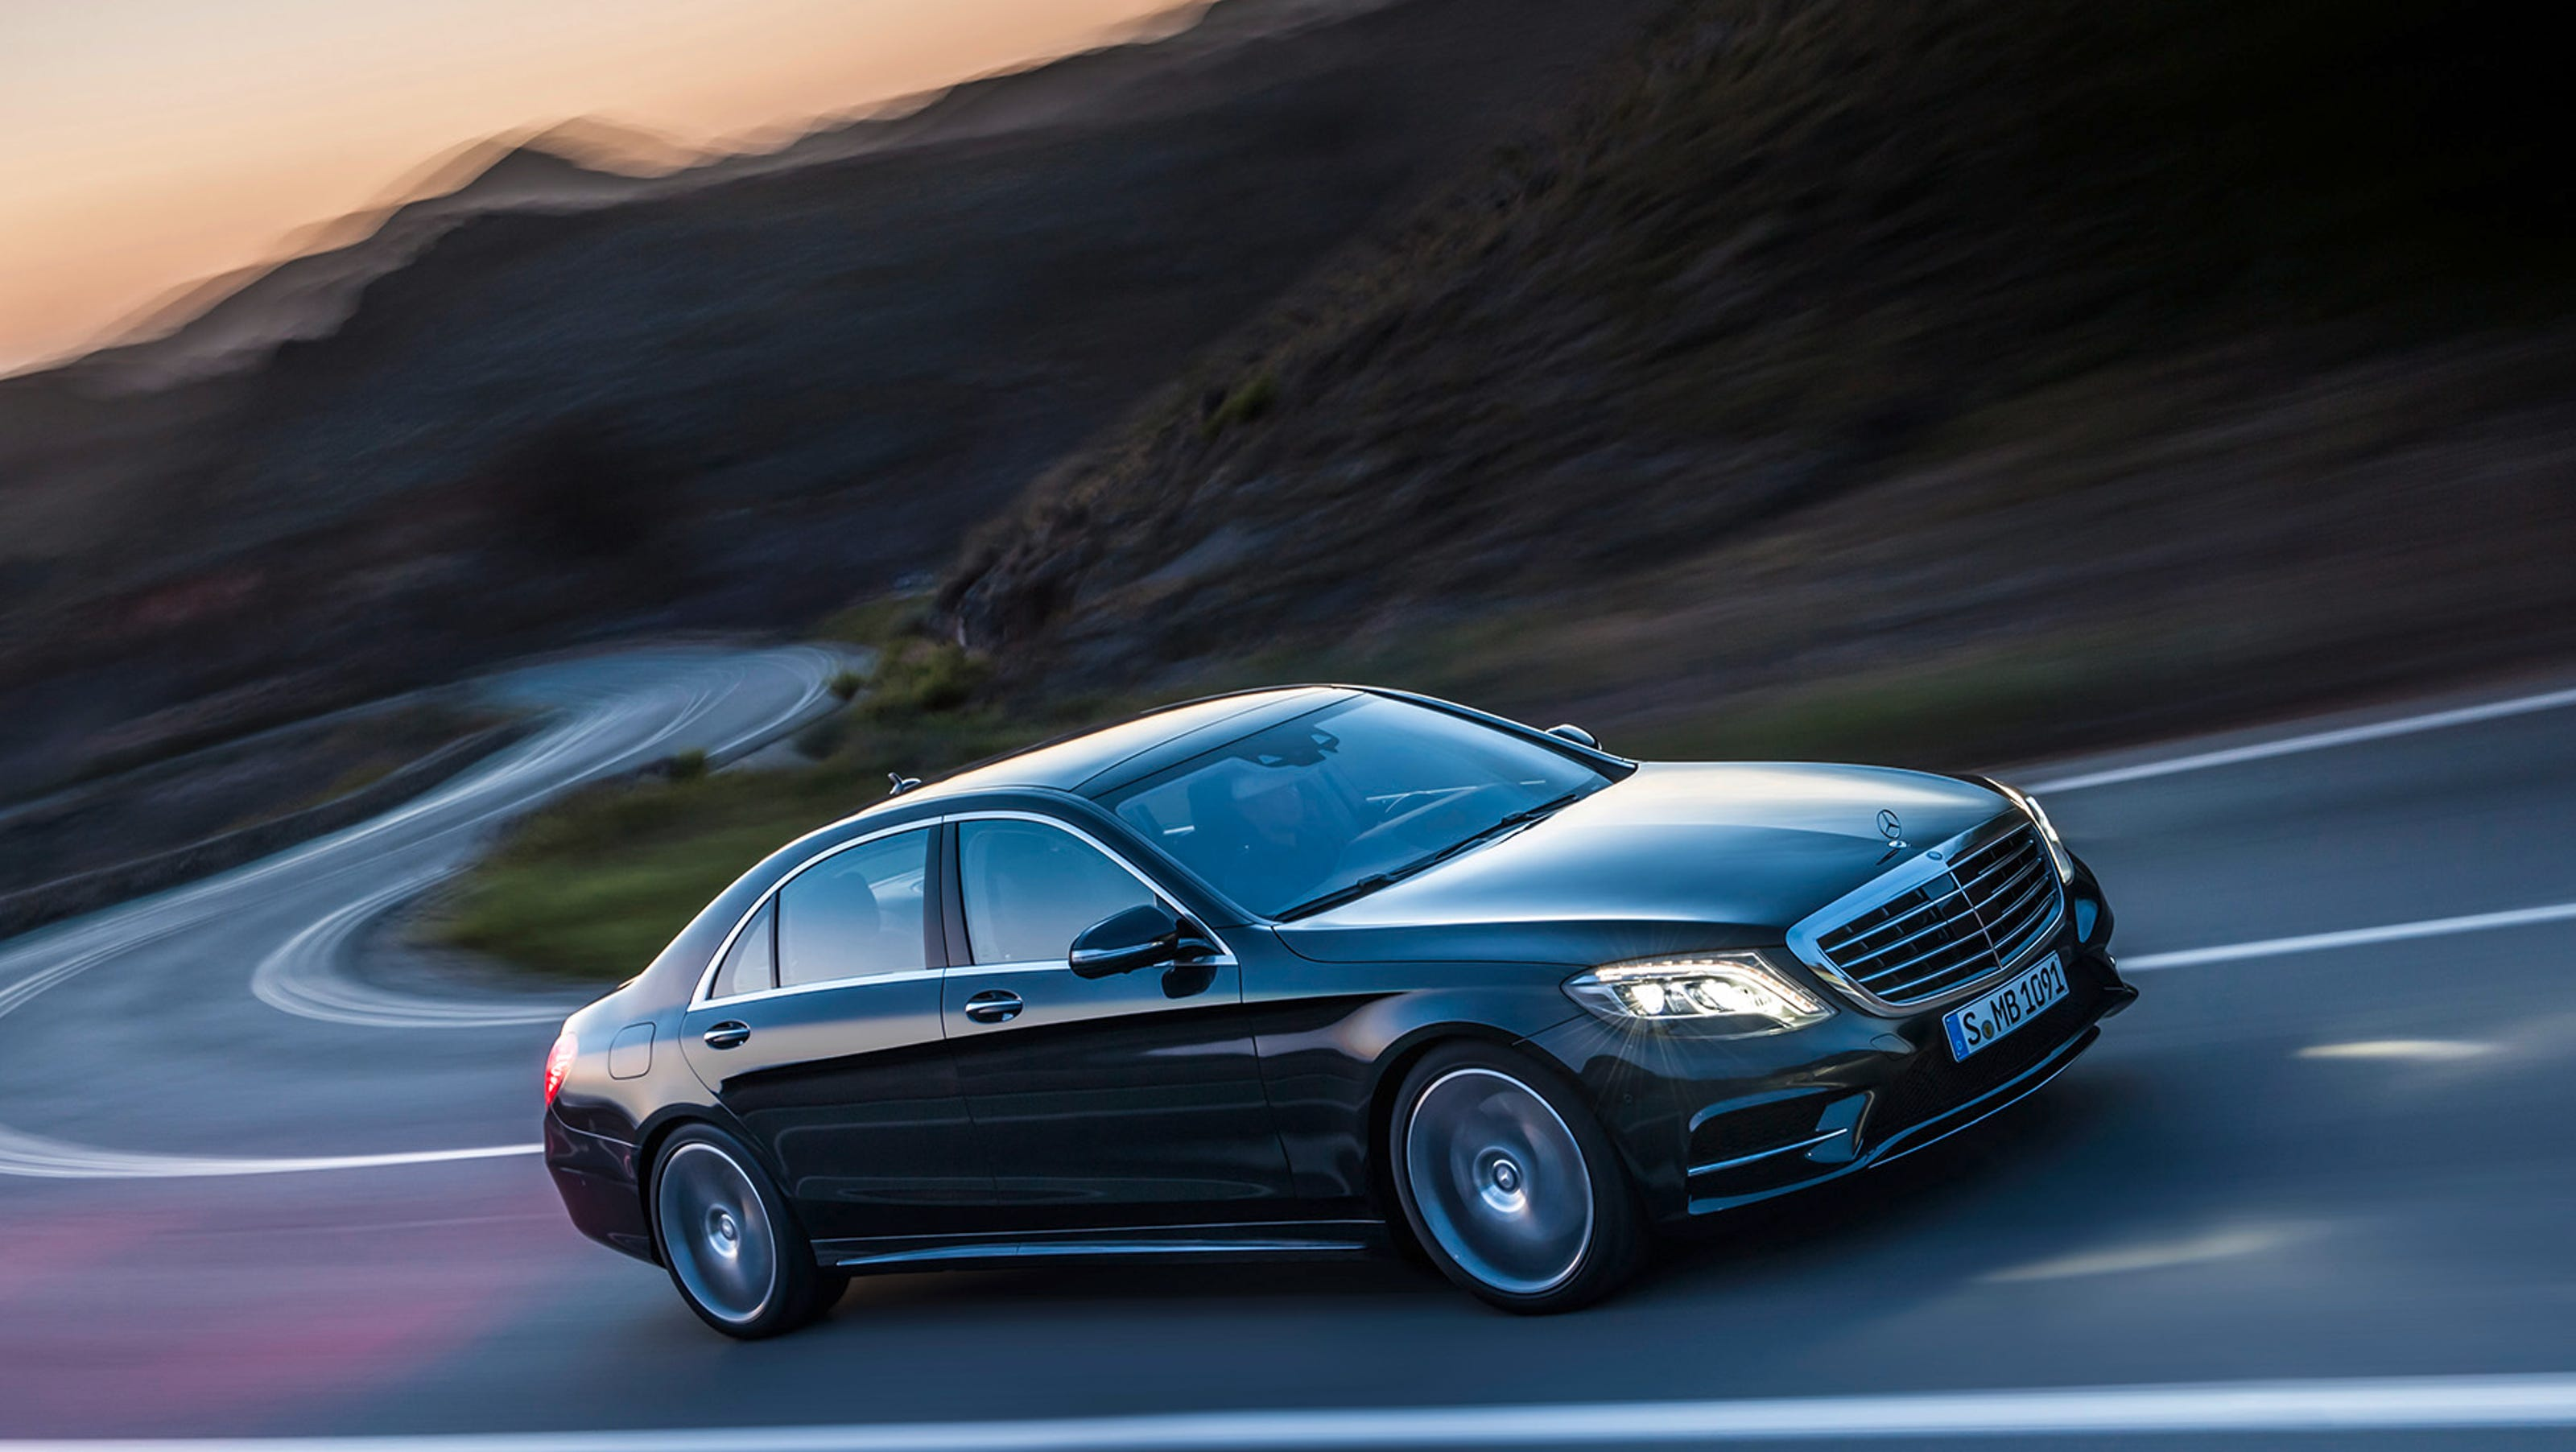 Mercedes Benz Of Des Moines >> Mercedes-Benz S-Class lives up to high price